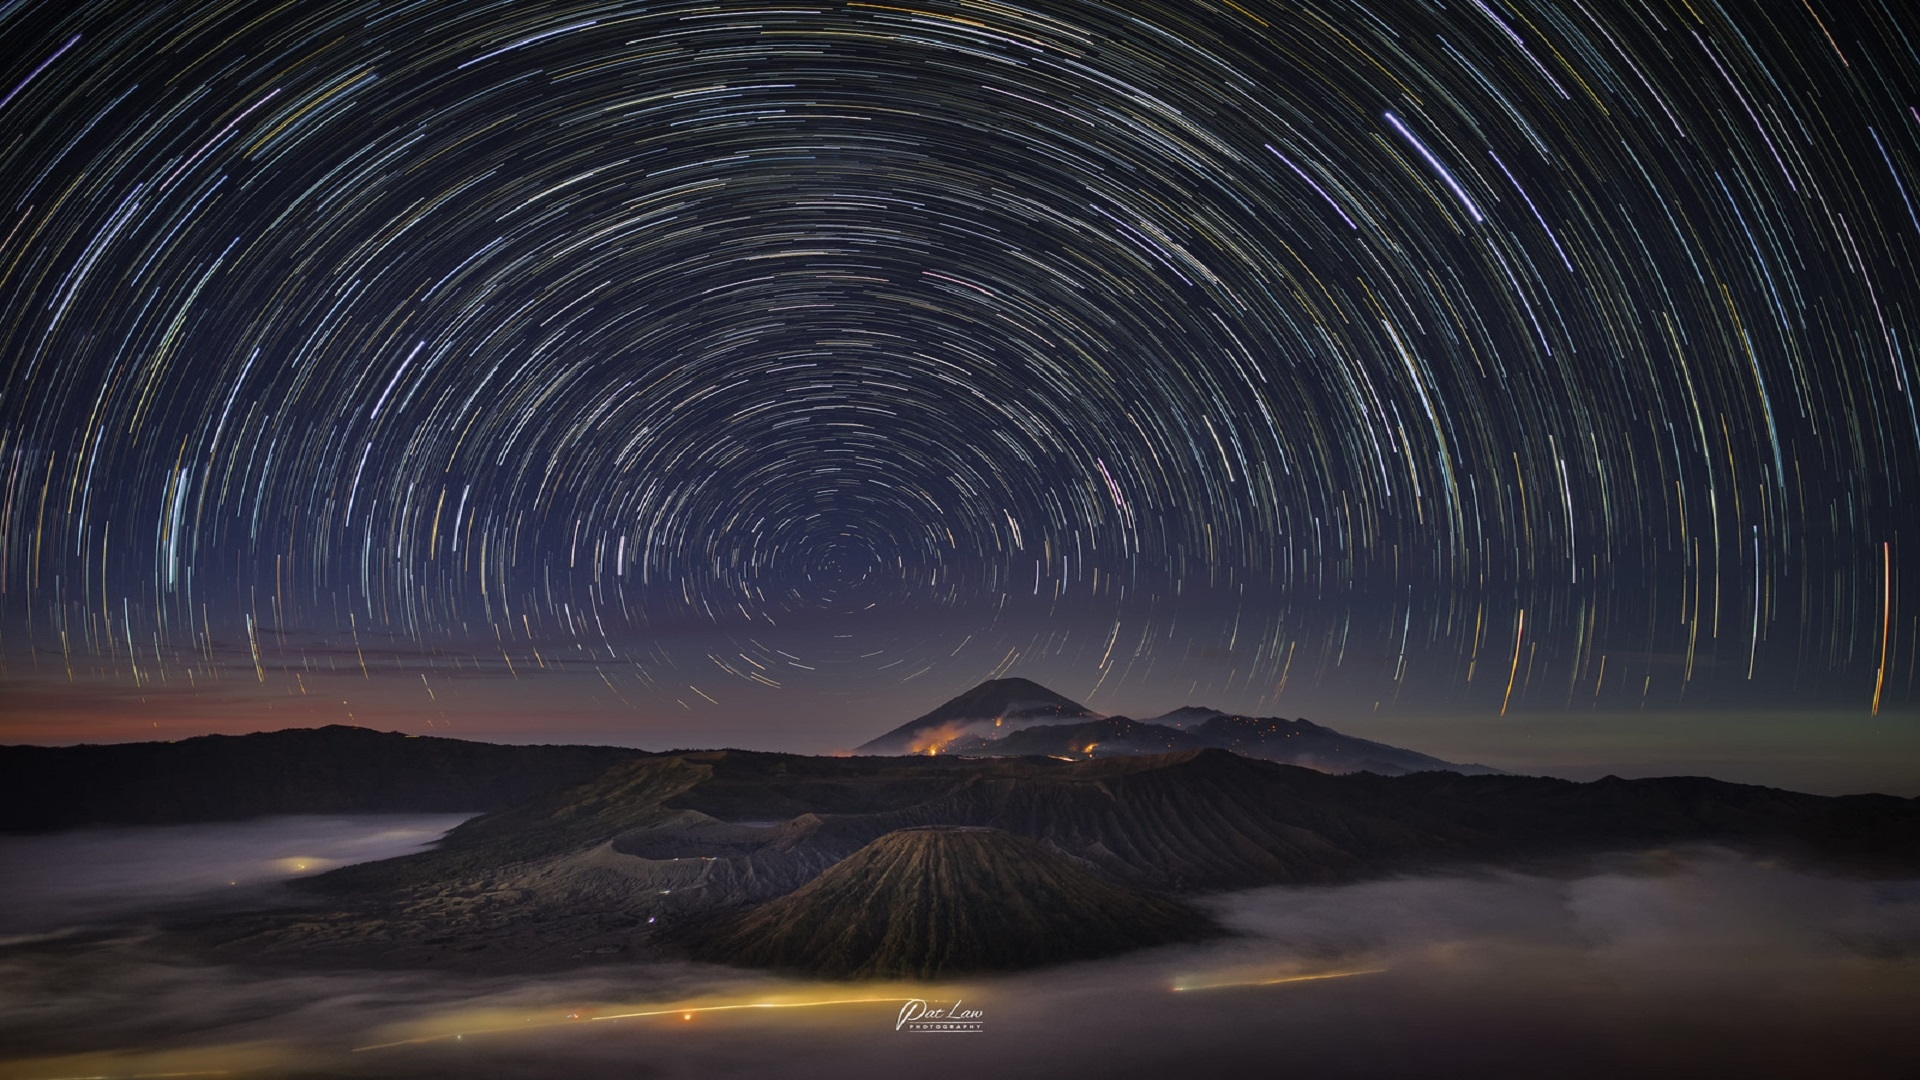 Star Trail In The Night Sky Wallpaper Hd Nature 4k